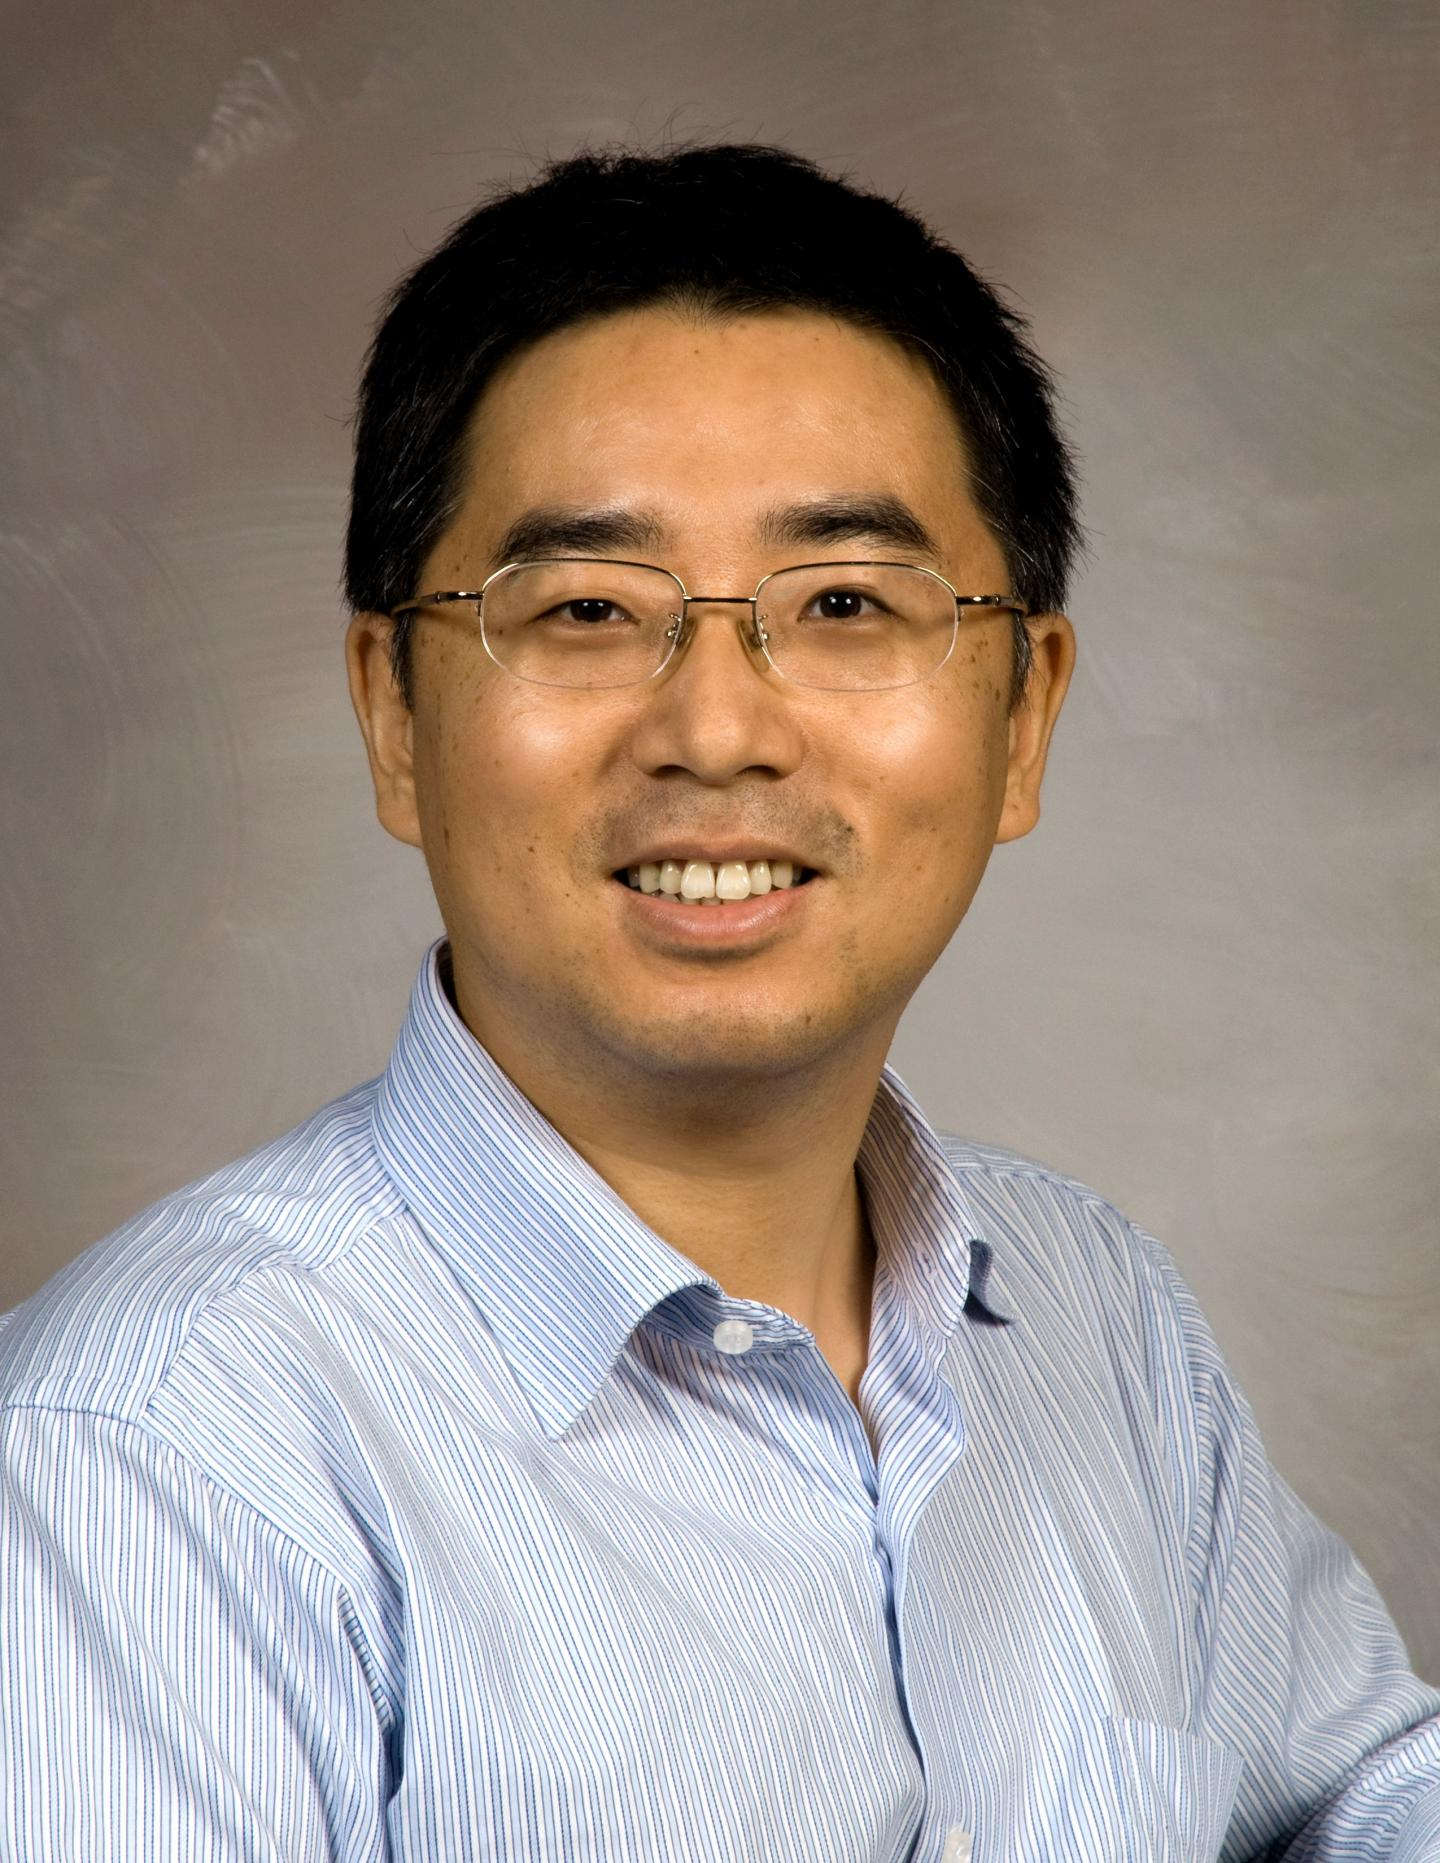 Researcher Xiaoming Liu, Ph.D., University of Texas Health Science Center at Houston